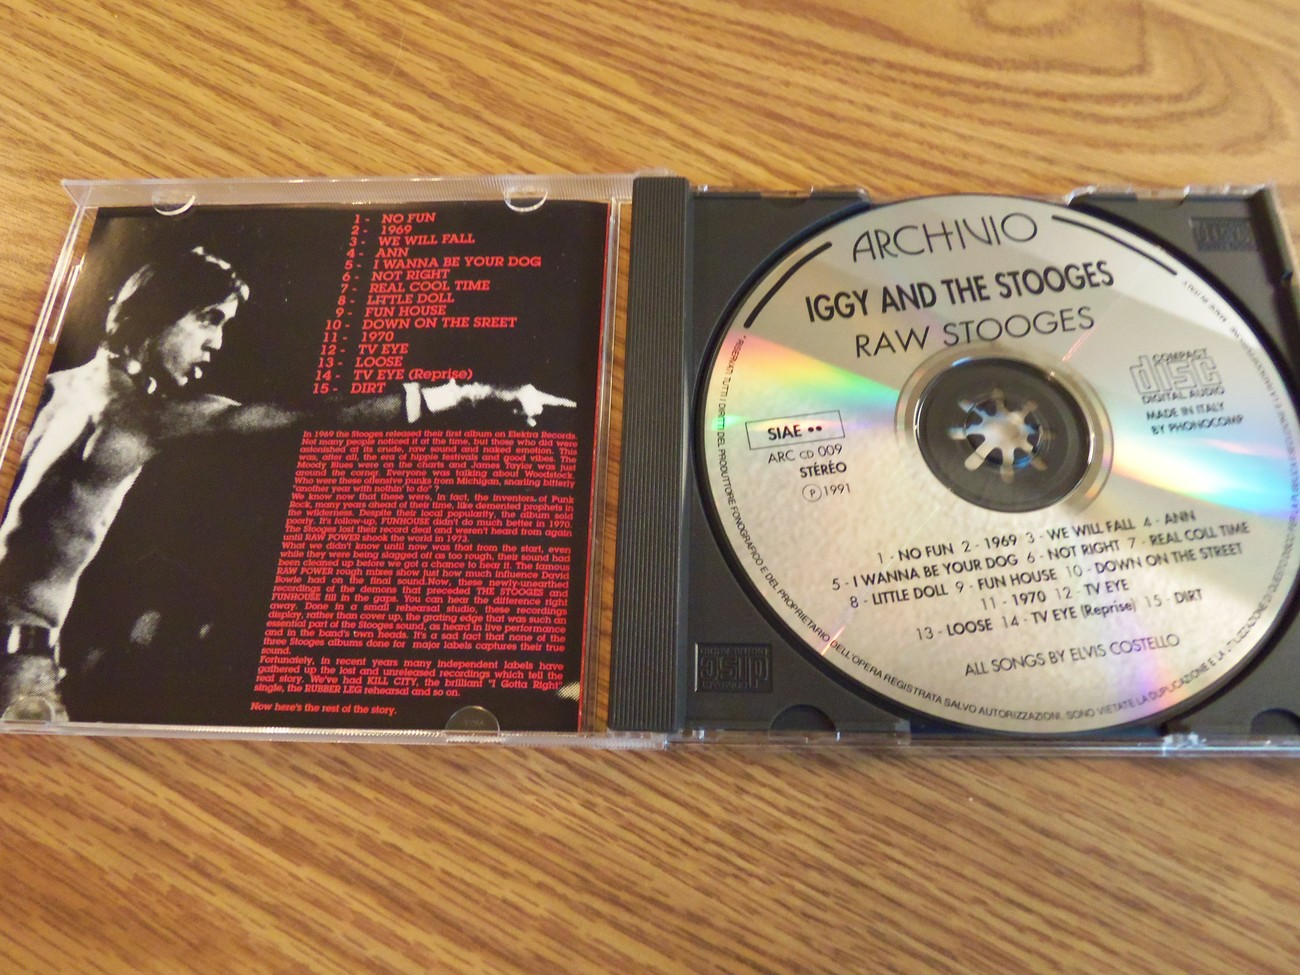 Iggy and The Stooges Raw Stooges Archivo 1991 Cd Detroit Iggy Pop